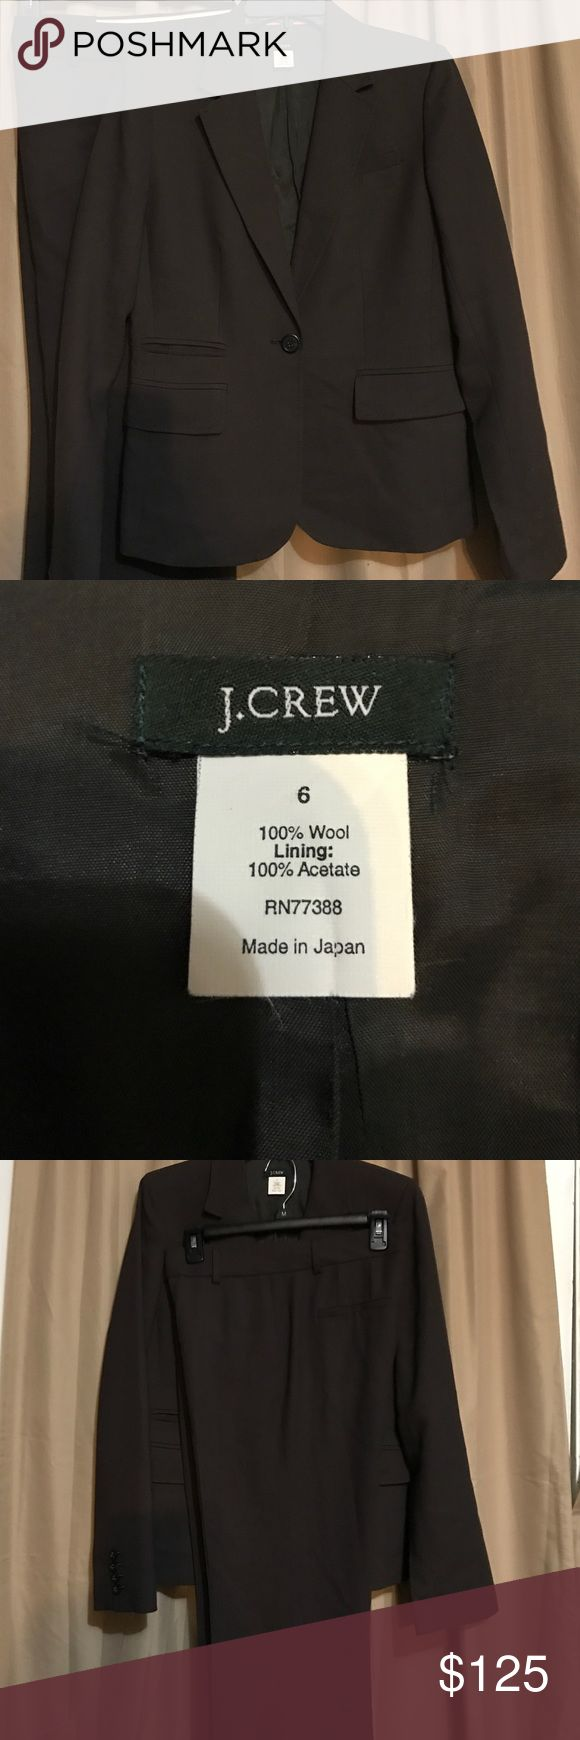 NWOT! J Crew Suit Seperates Size 6 stunning This is a two piece chocolate brown suit by J Crew, each piece is 100% wool and lined. Interior pocket is found in the inner right side piped in pink! Pretty. The jacket had 3 front pockets when the a sliming design. Pants and jacket are a size 6. Pants are an original design with slimming two front and back pockets. Worn once. Paid $375, piece can be sold separately. A steal' J. Crew Pants Trousers